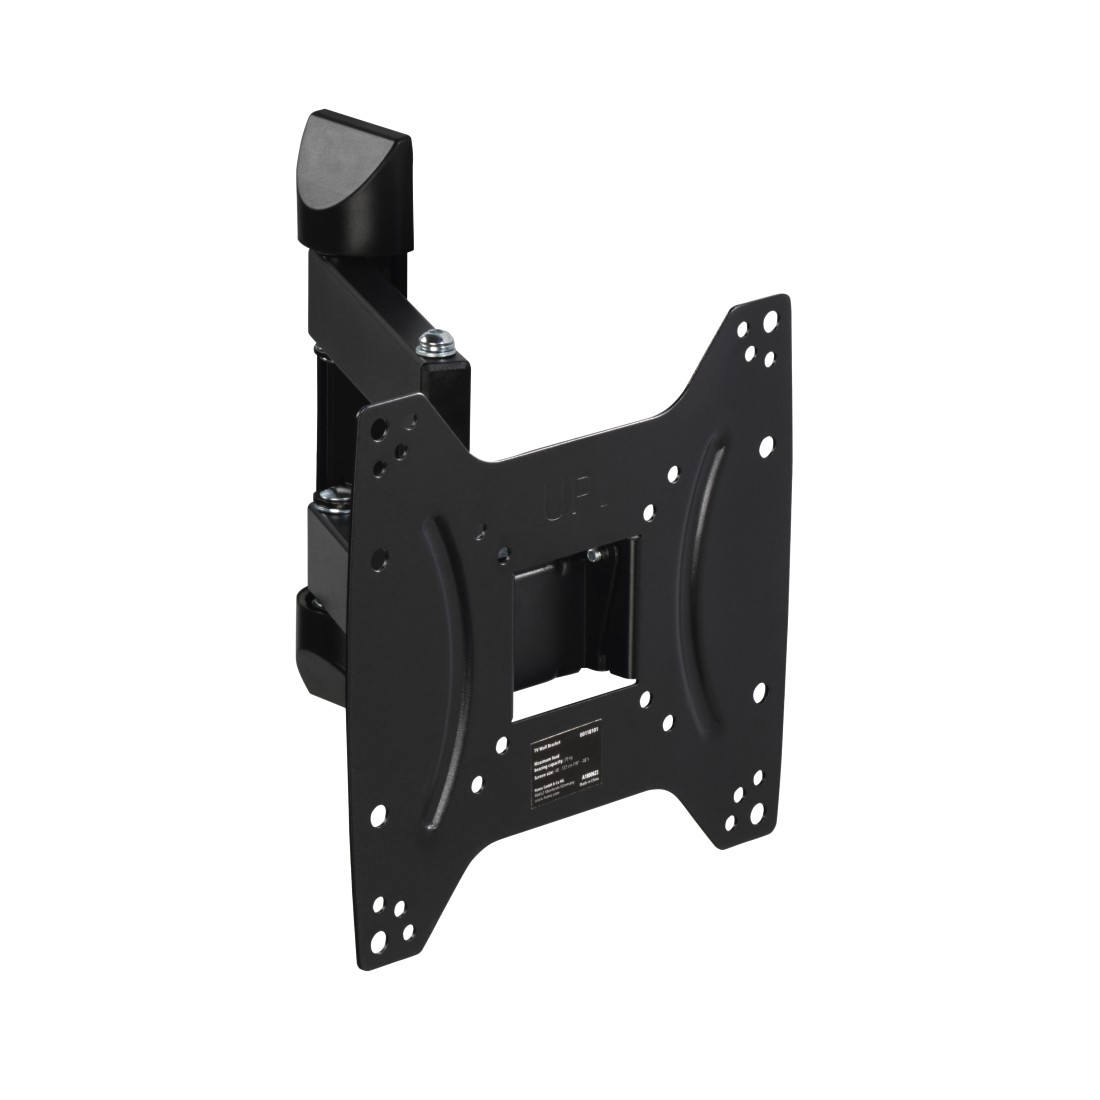 "dex8 High-Res Detail 8 - Hama, FULLMOTION TV Wall Bracket, 1 Star, 200x200, 122cm (48""), 2 arms, black"